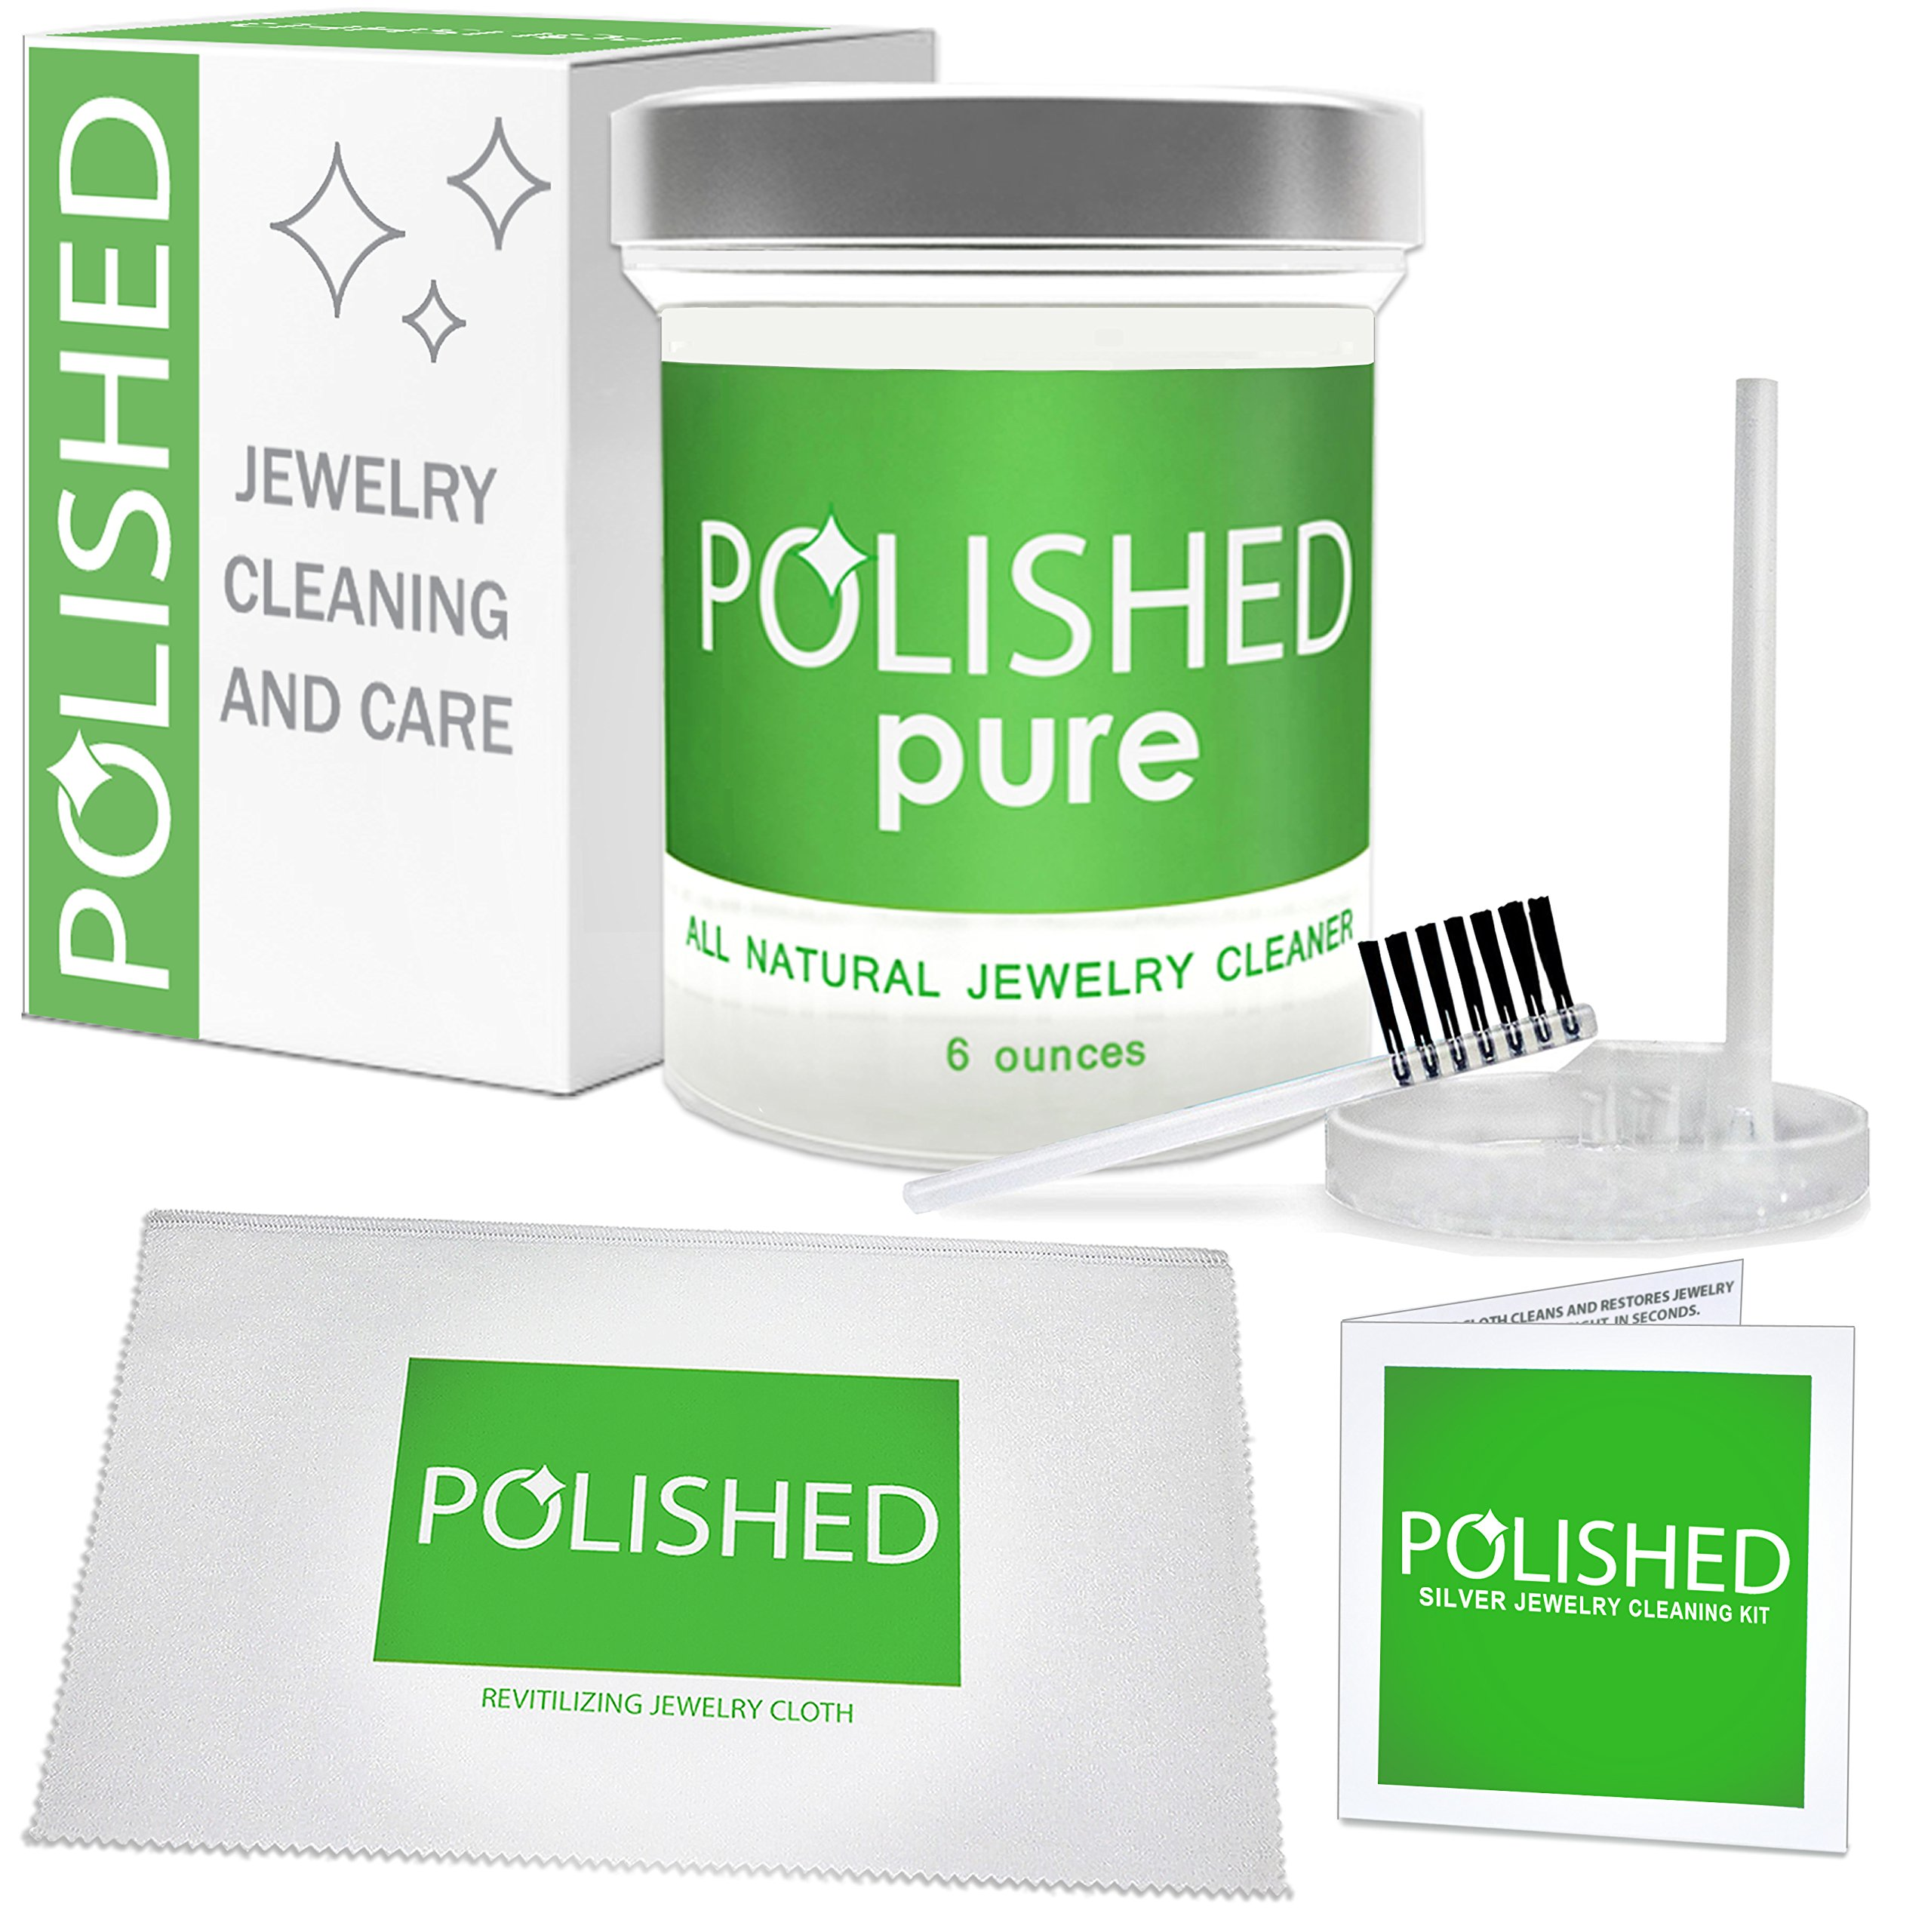 NEW Polished 100% All Natural Jewelry Cleaner Kit - Professional Clean in 2-Minutes! Diamond Ring Cleaner, Gold, Platinum | Safe on Skin, Made in USA, Jewelry Cleaning Solution + Polishing Cloth by Polished (Image #1)